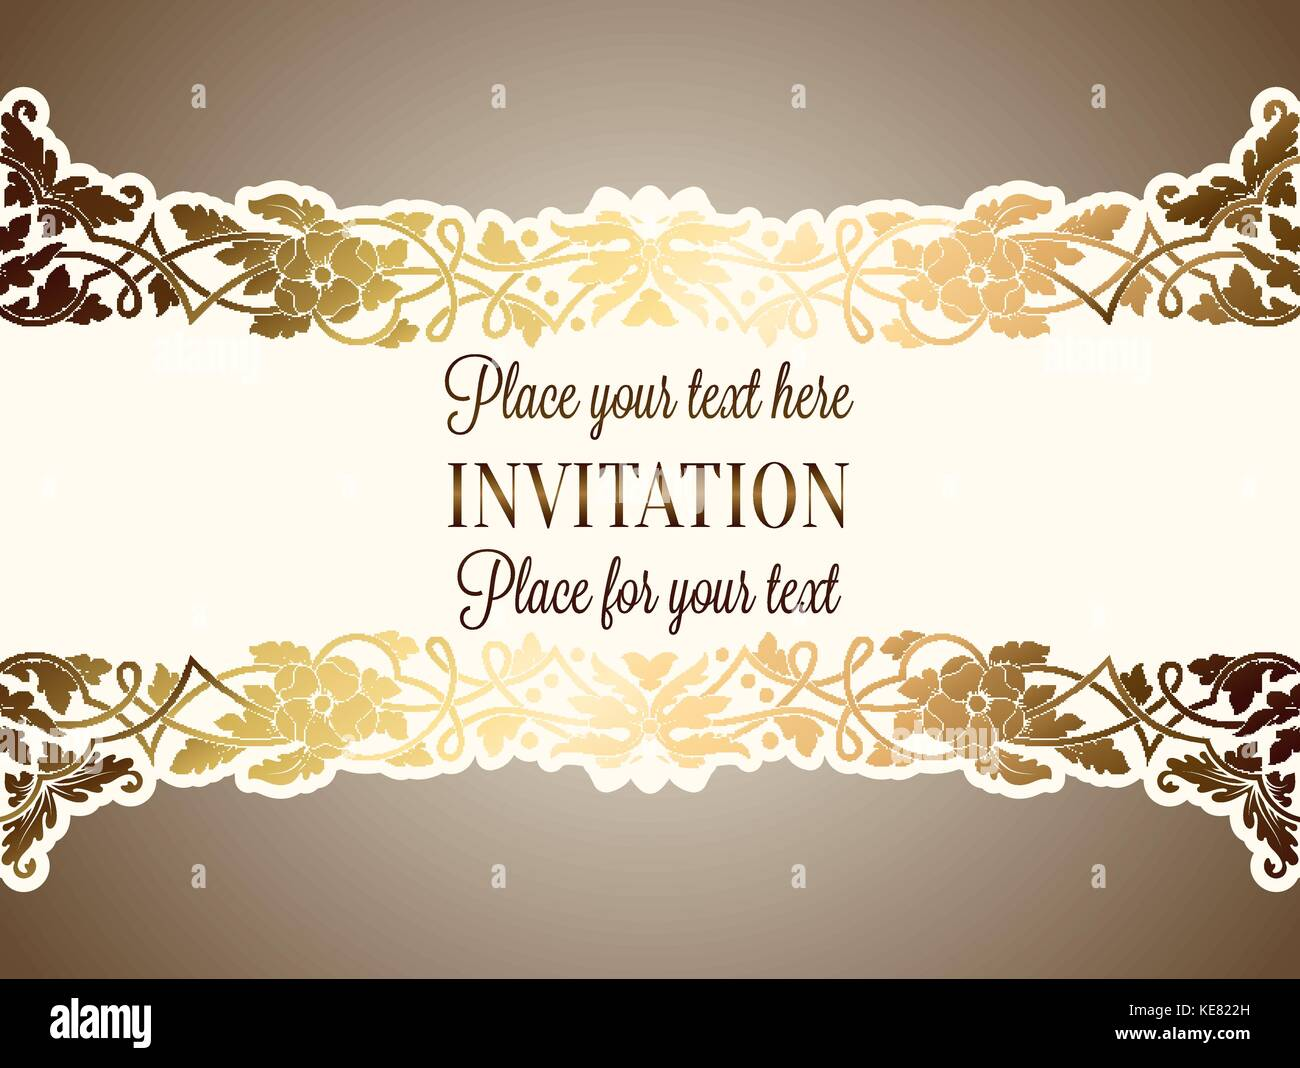 Intricate baroque luxury wedding invitation card rich gold decor on intricate baroque luxury wedding invitation card rich gold decor on beige background with frame and place for text lacy foliage with shiny gradient stopboris Gallery